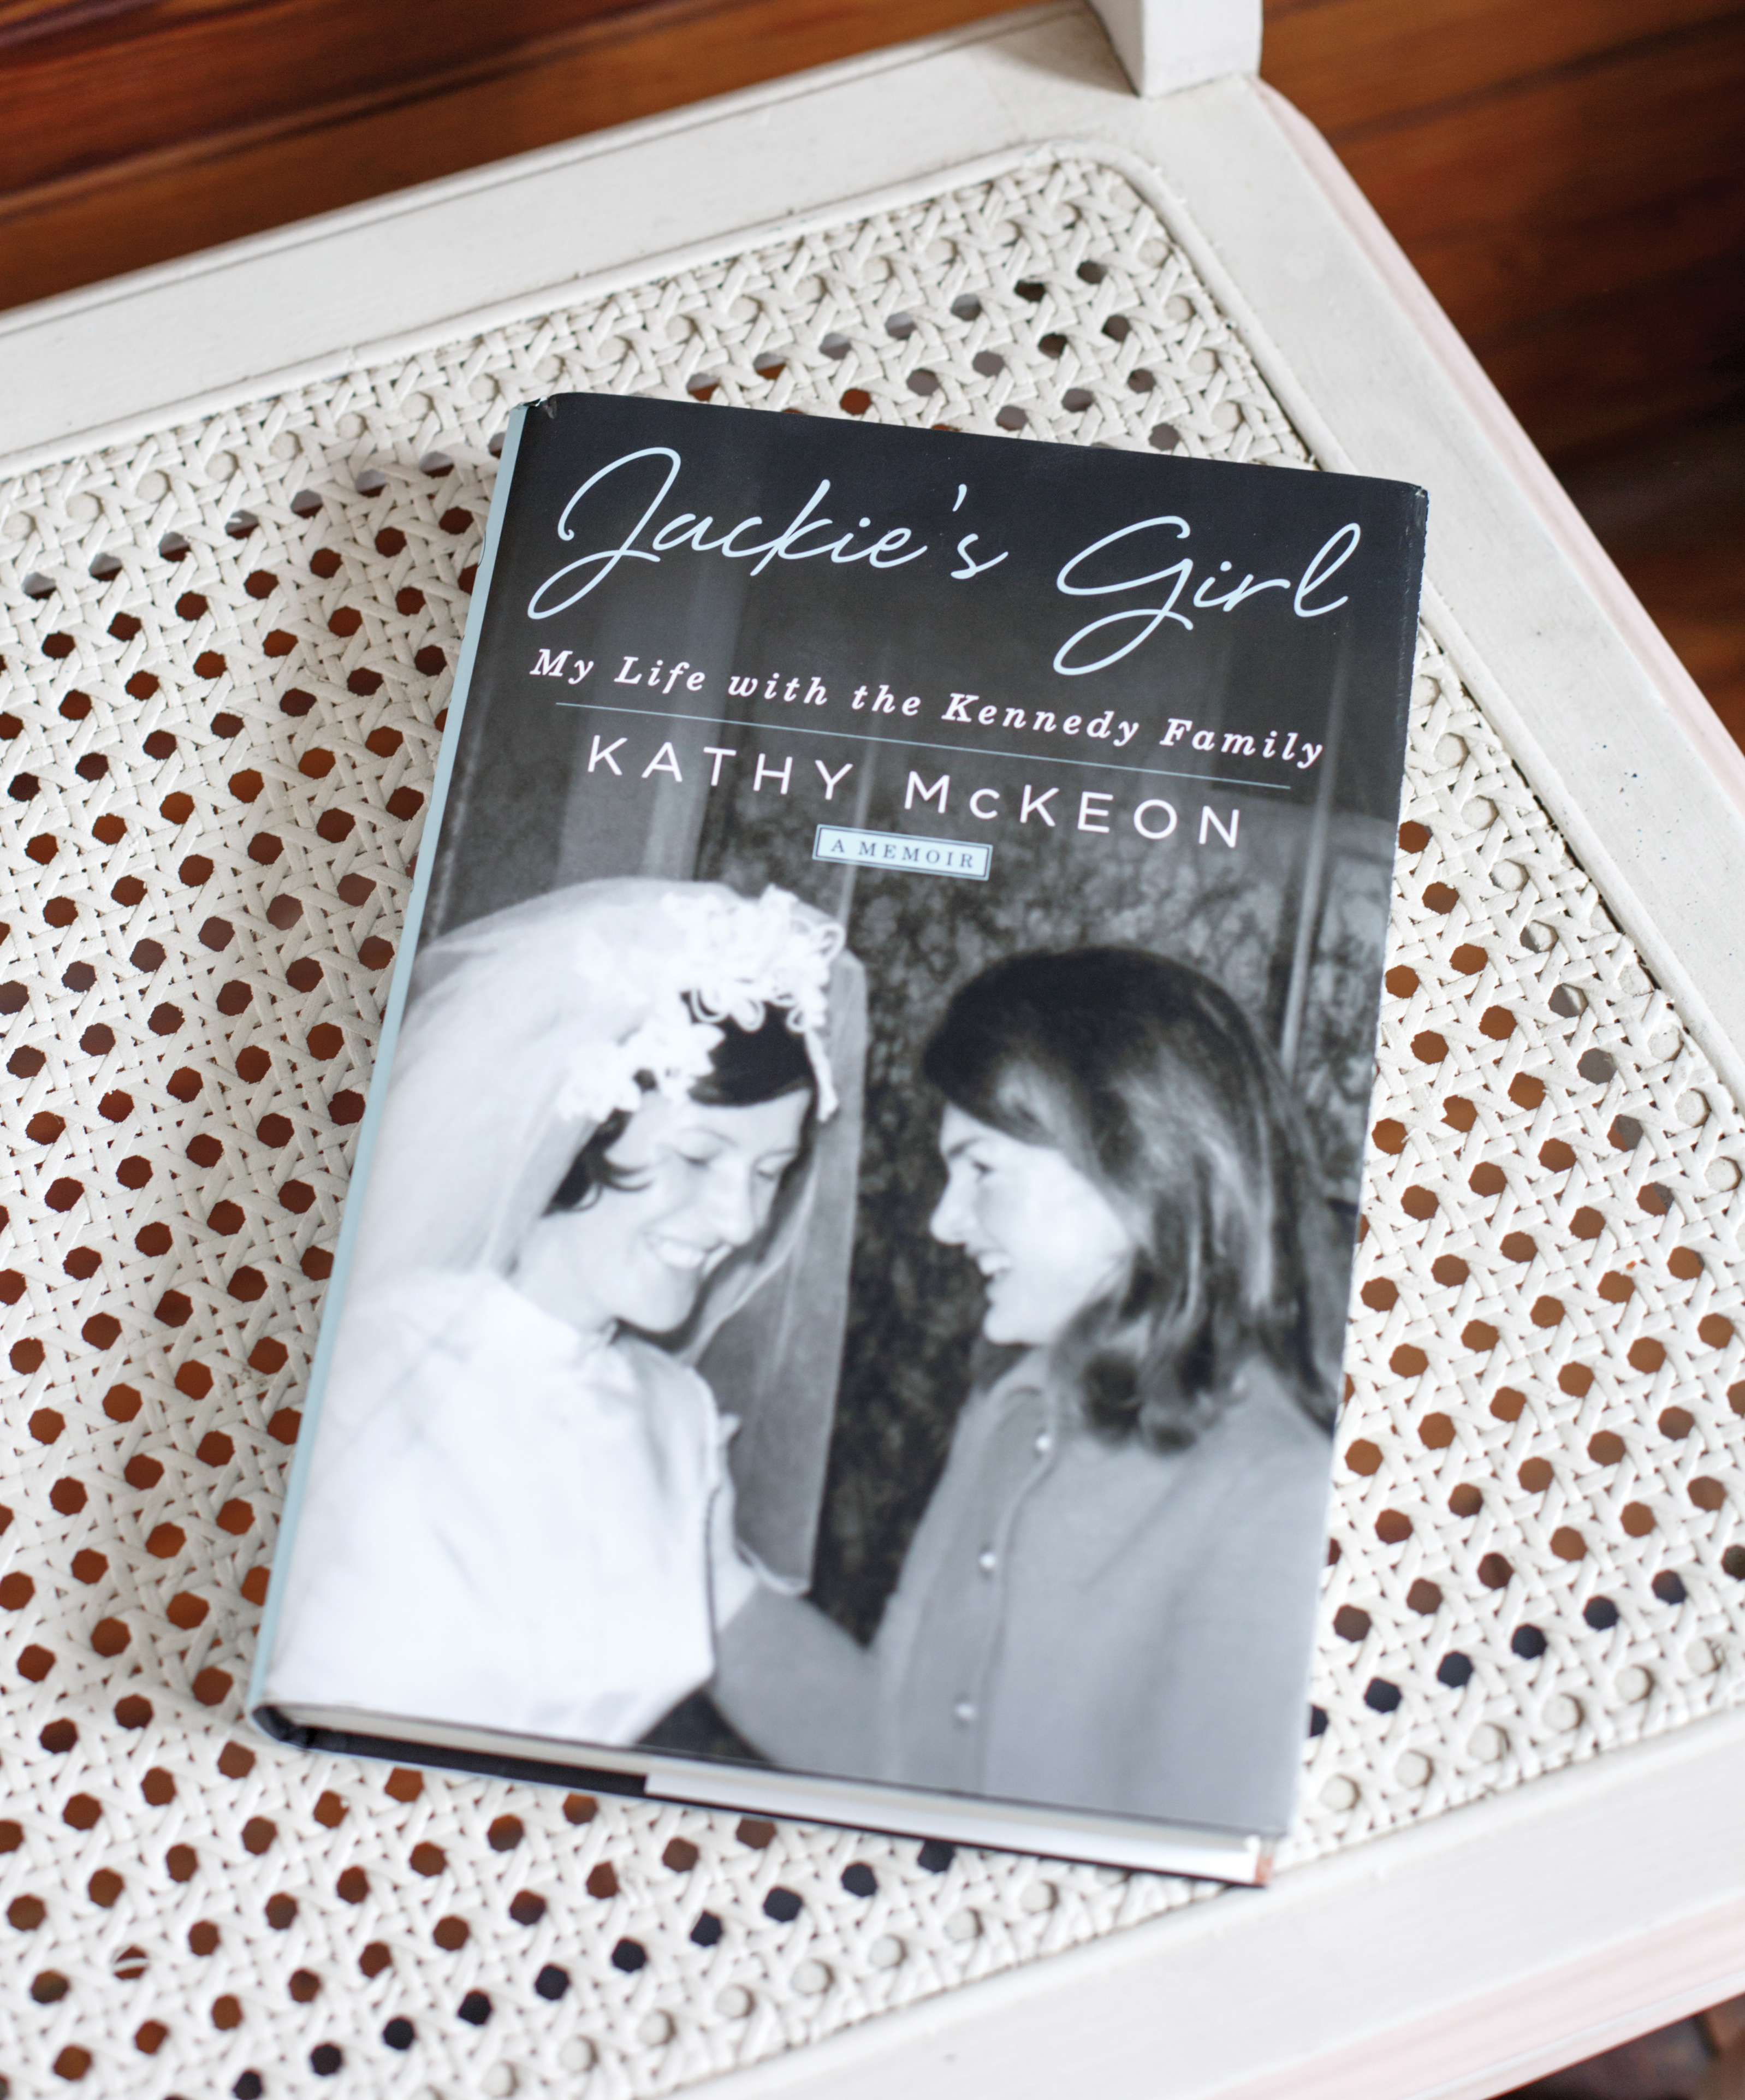 Kathy McKeon, a resident of Naples, is the author of this highly anticipated memoir; photo courtesy of Jessie Preza